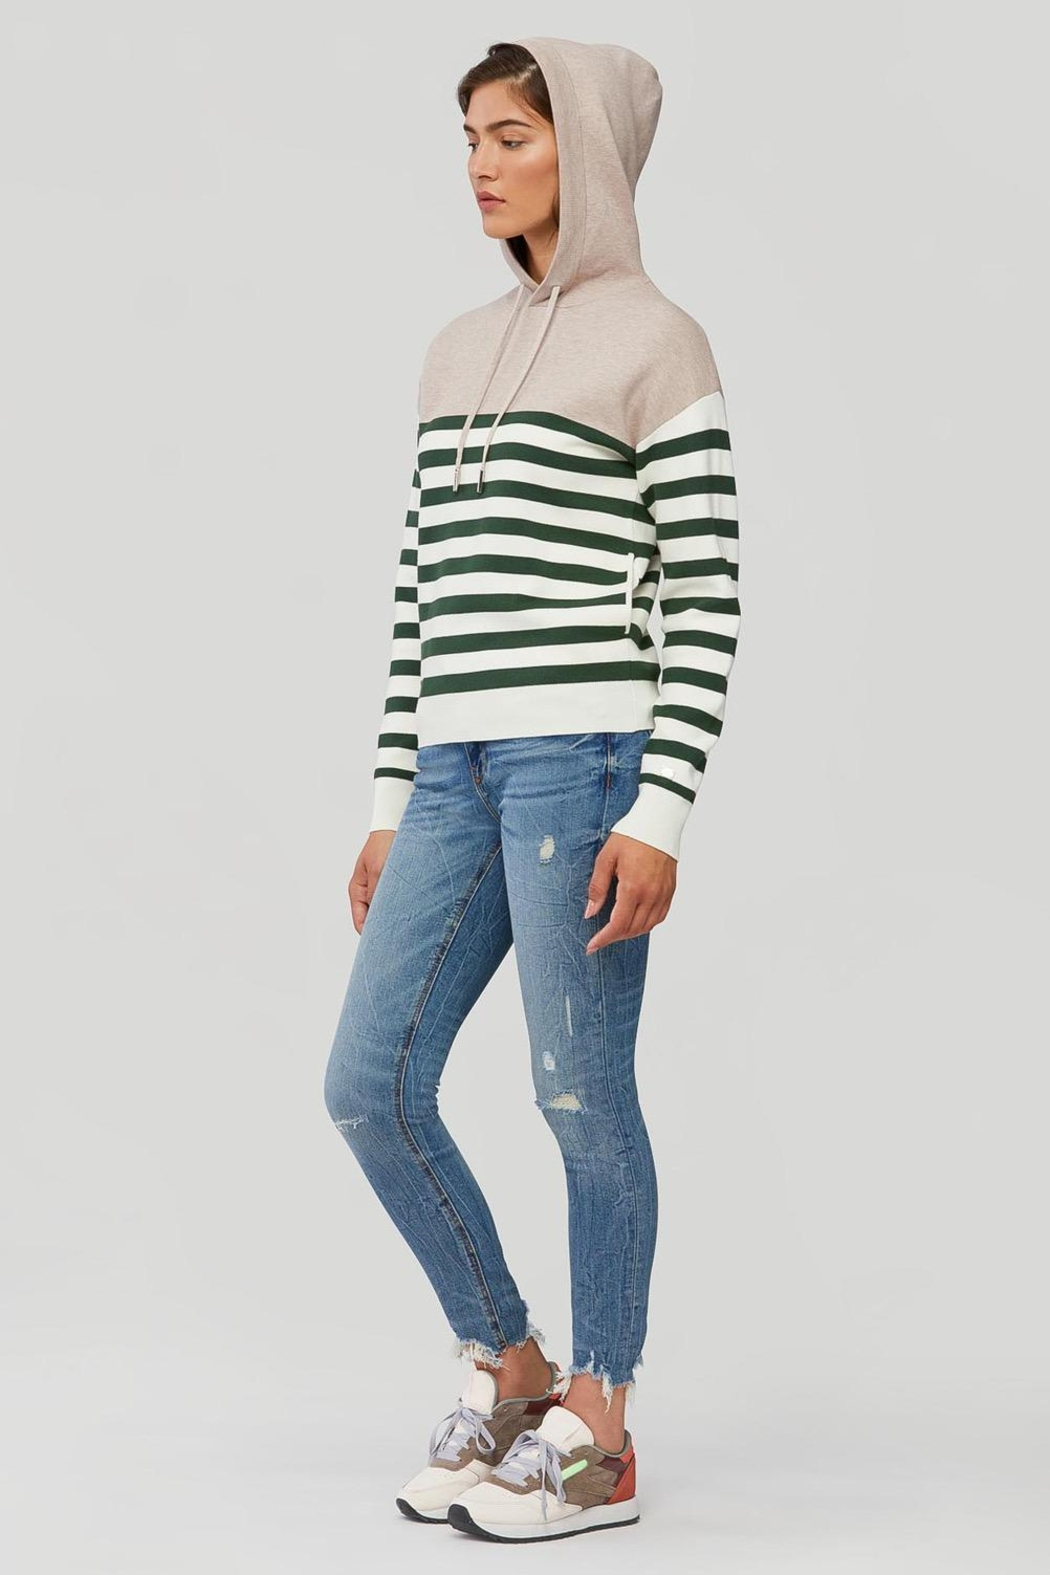 Soia & Kyo Leila Striped Knit Hoodie Fawn-Juniper - Front Full Image